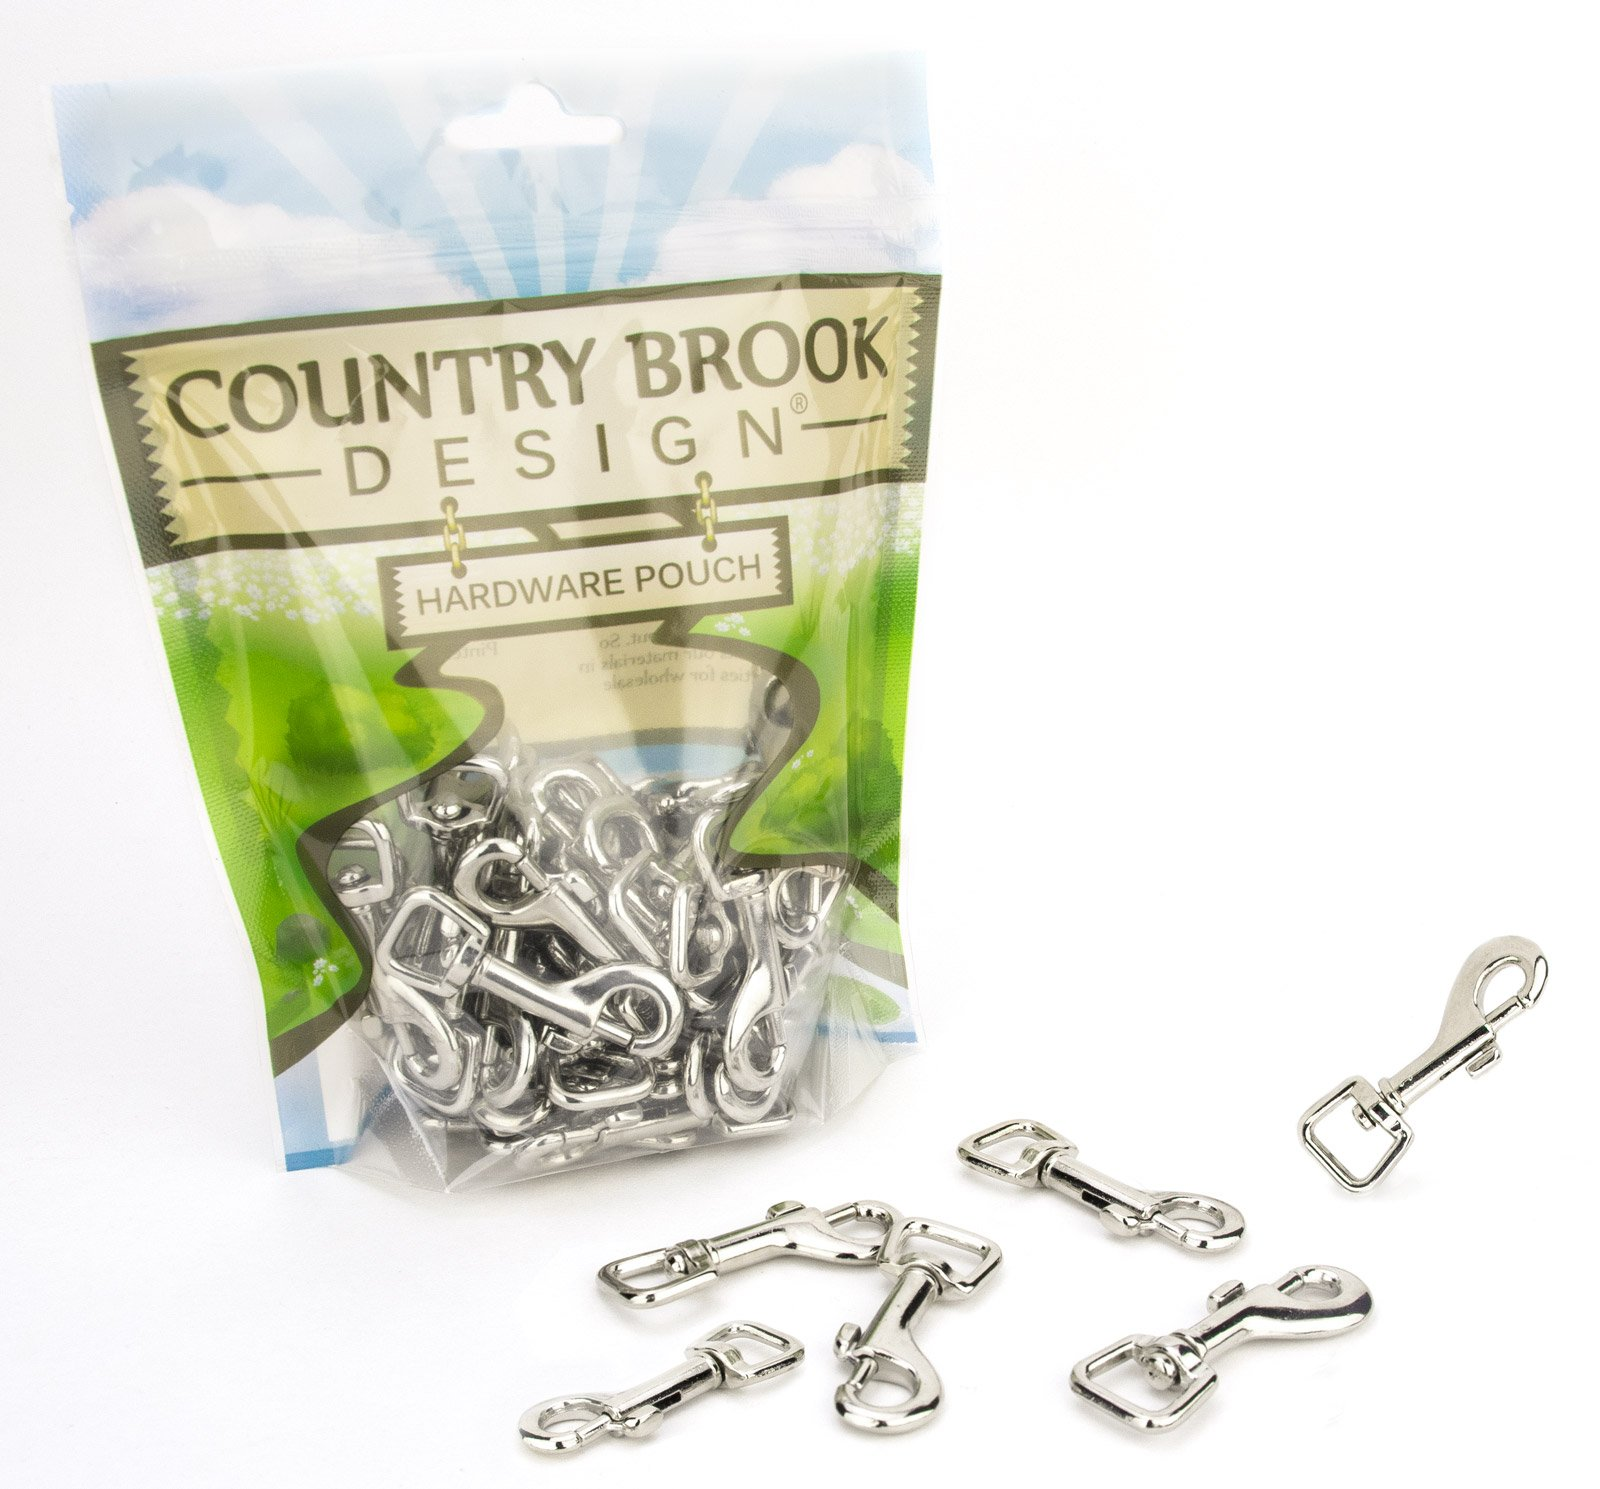 100 - Country Brook Design 1/2 Inch Swivel Snap Hooks by Country Brook Design